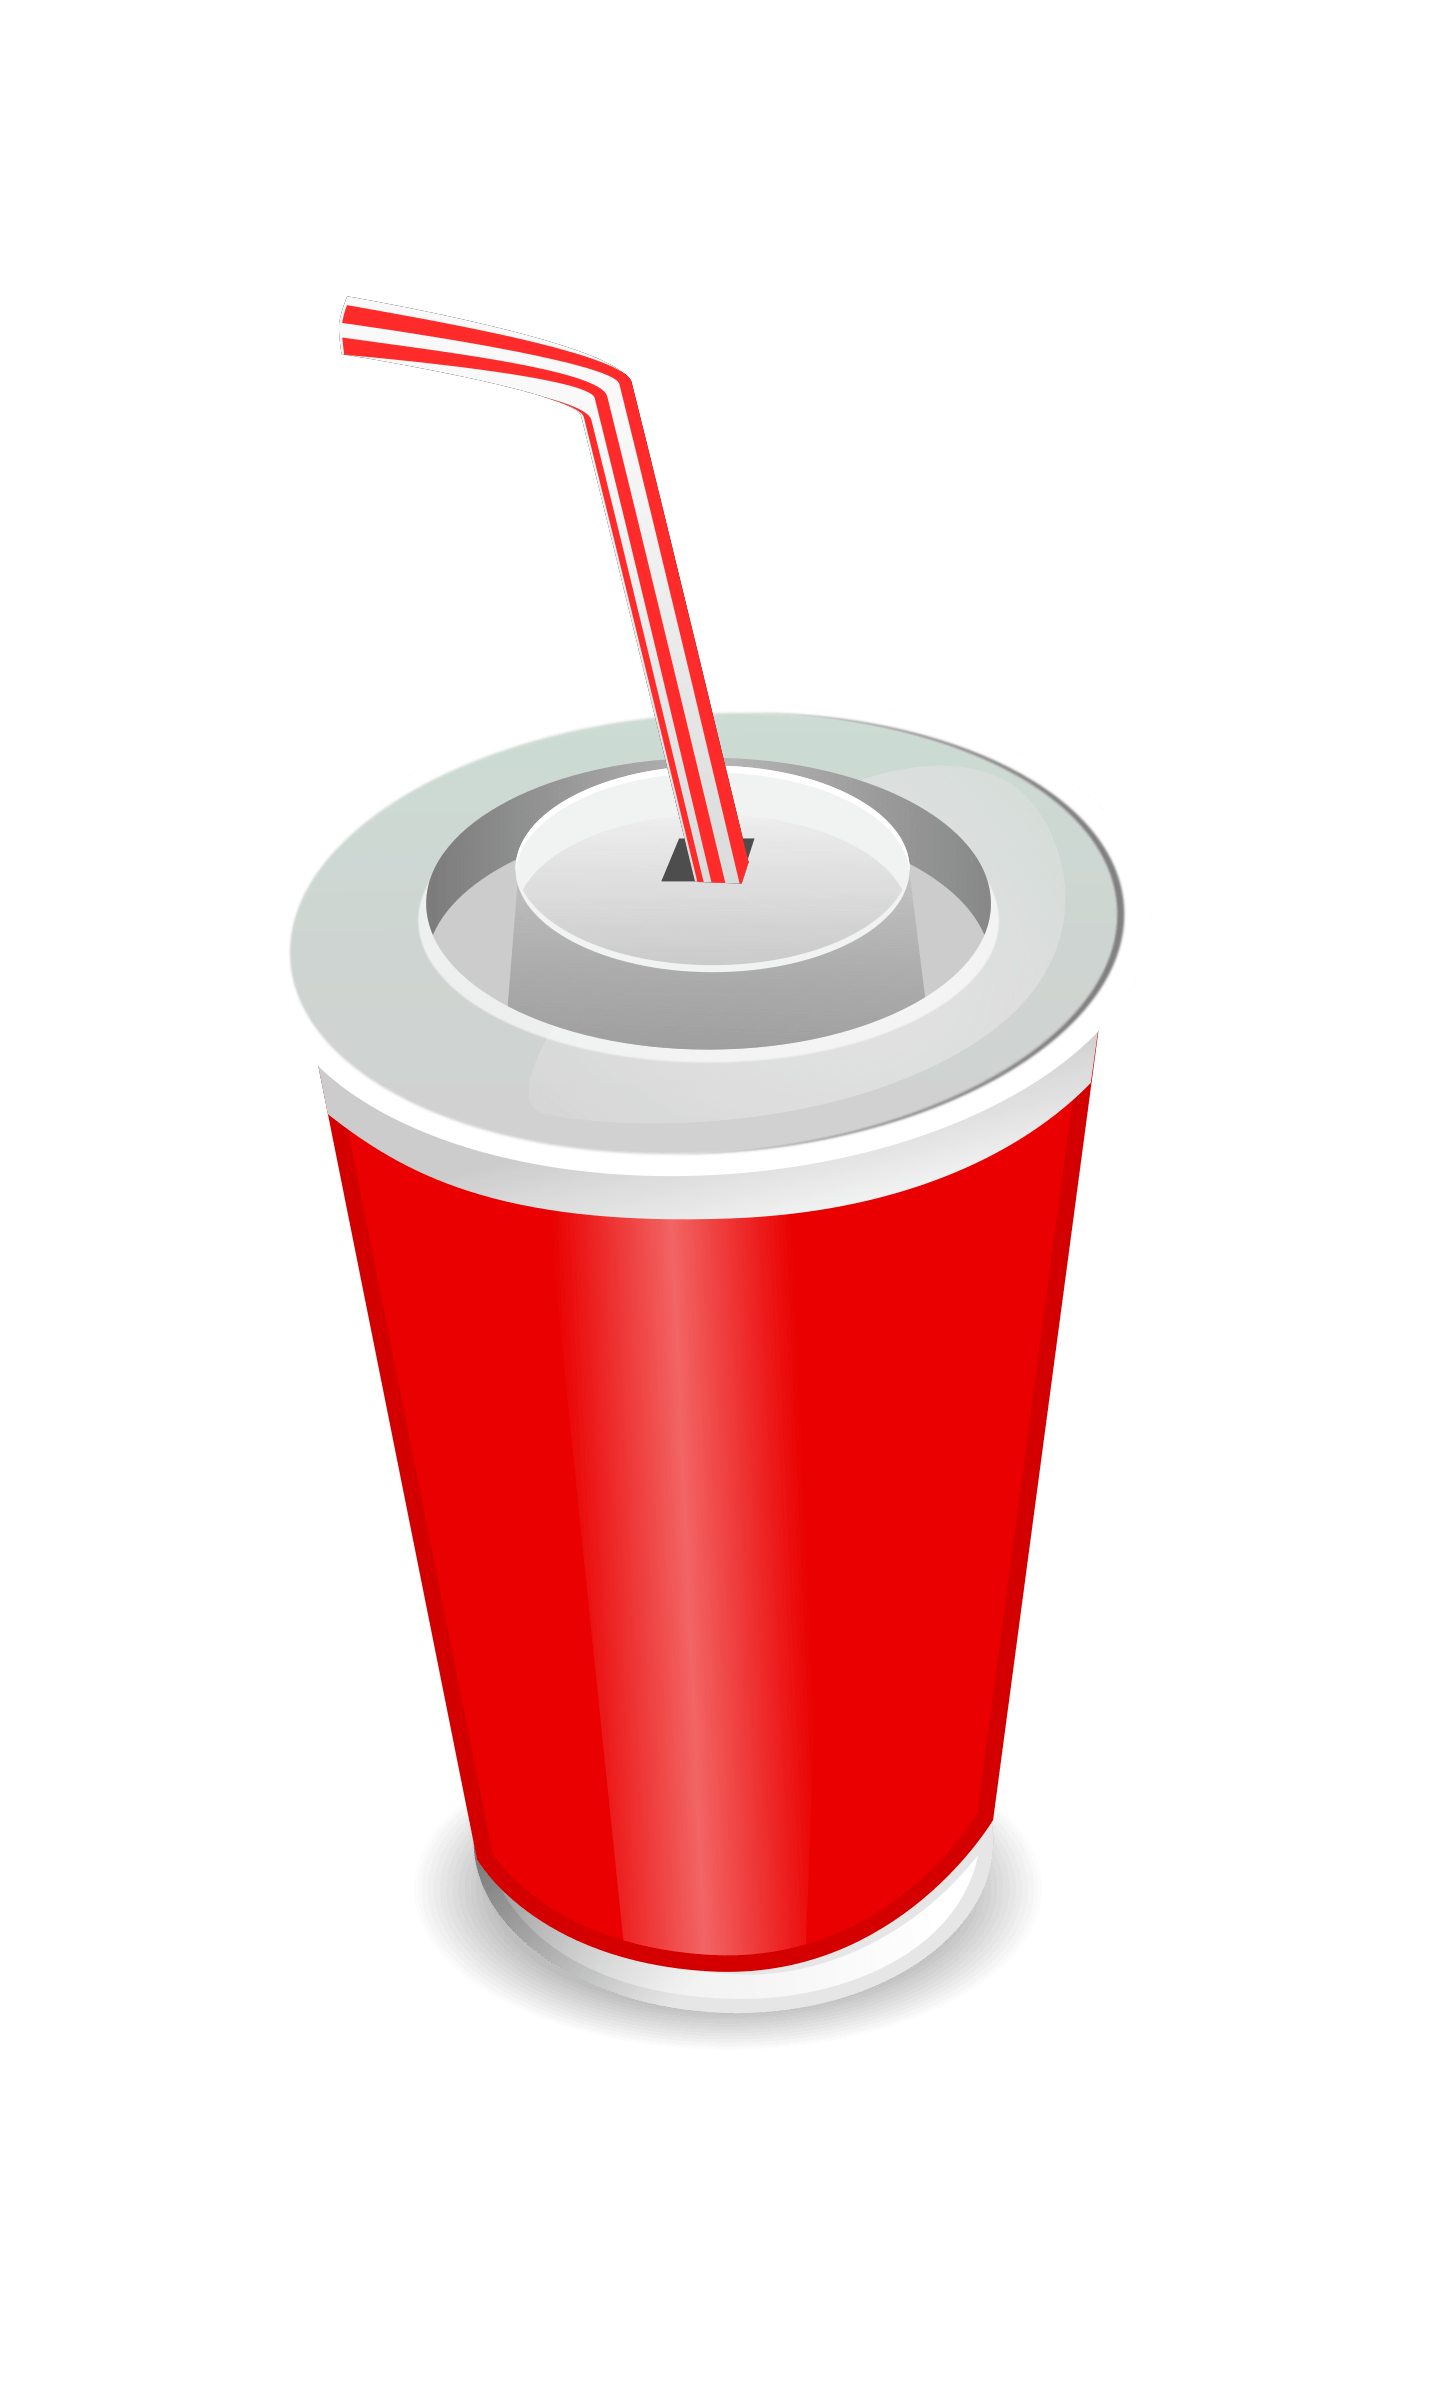 Drink Clipart Cold Object Drink Cold Object Transparent Free For Download On Webstockreview 2020